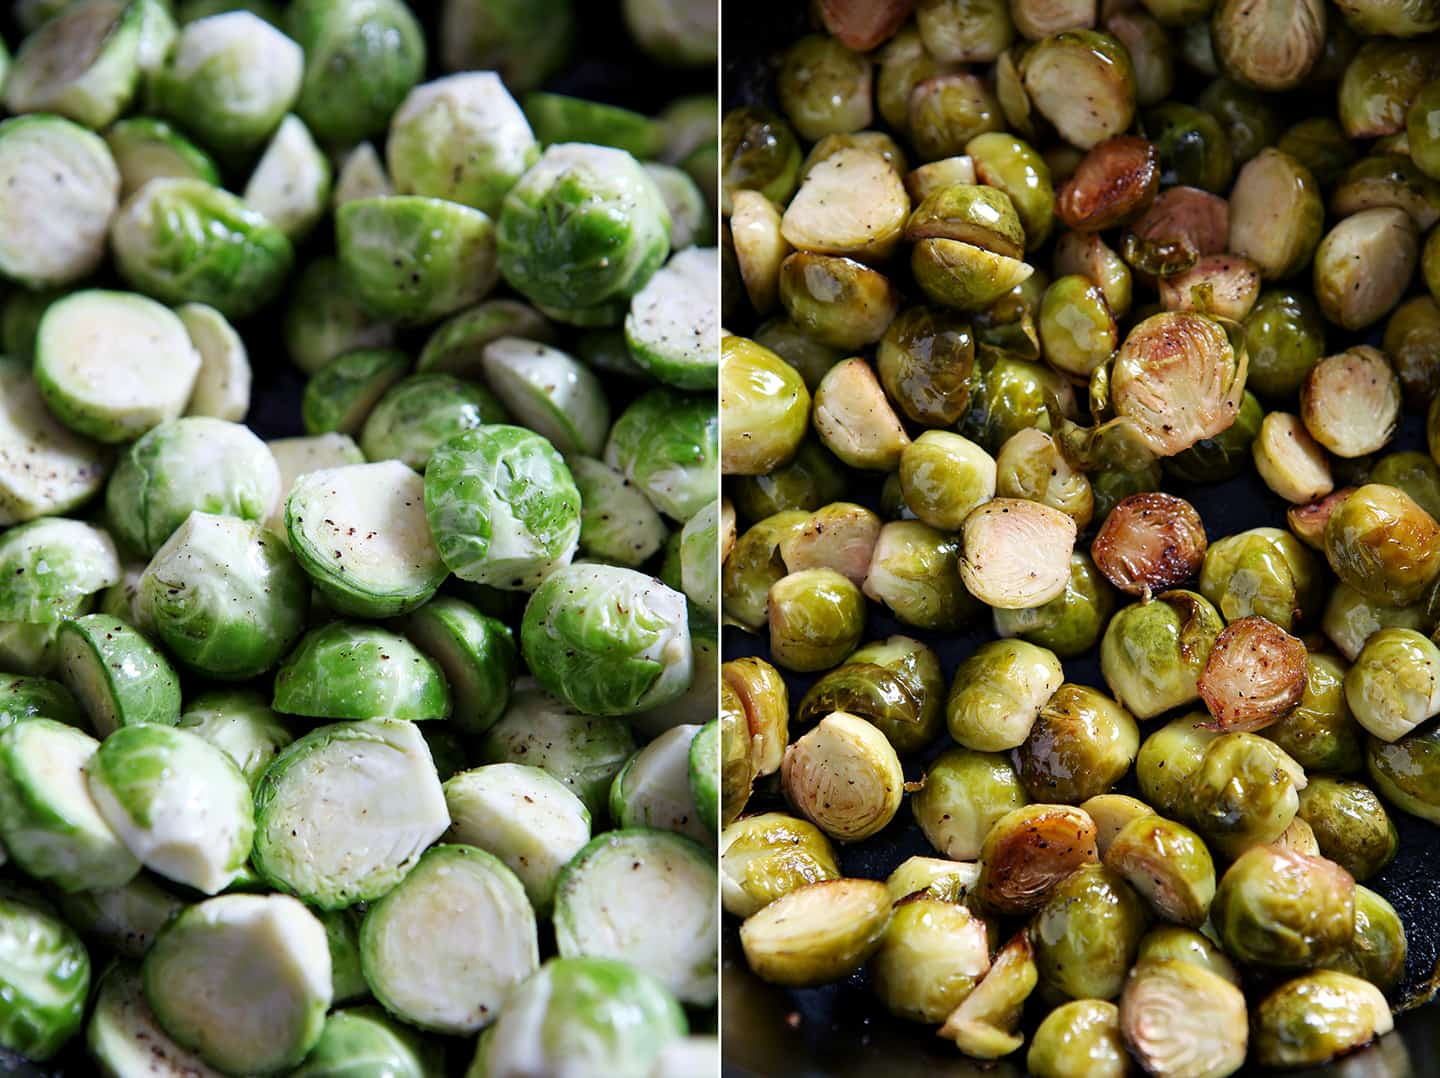 A collage of two image side by side showing Brussels sprouts before and after roasting